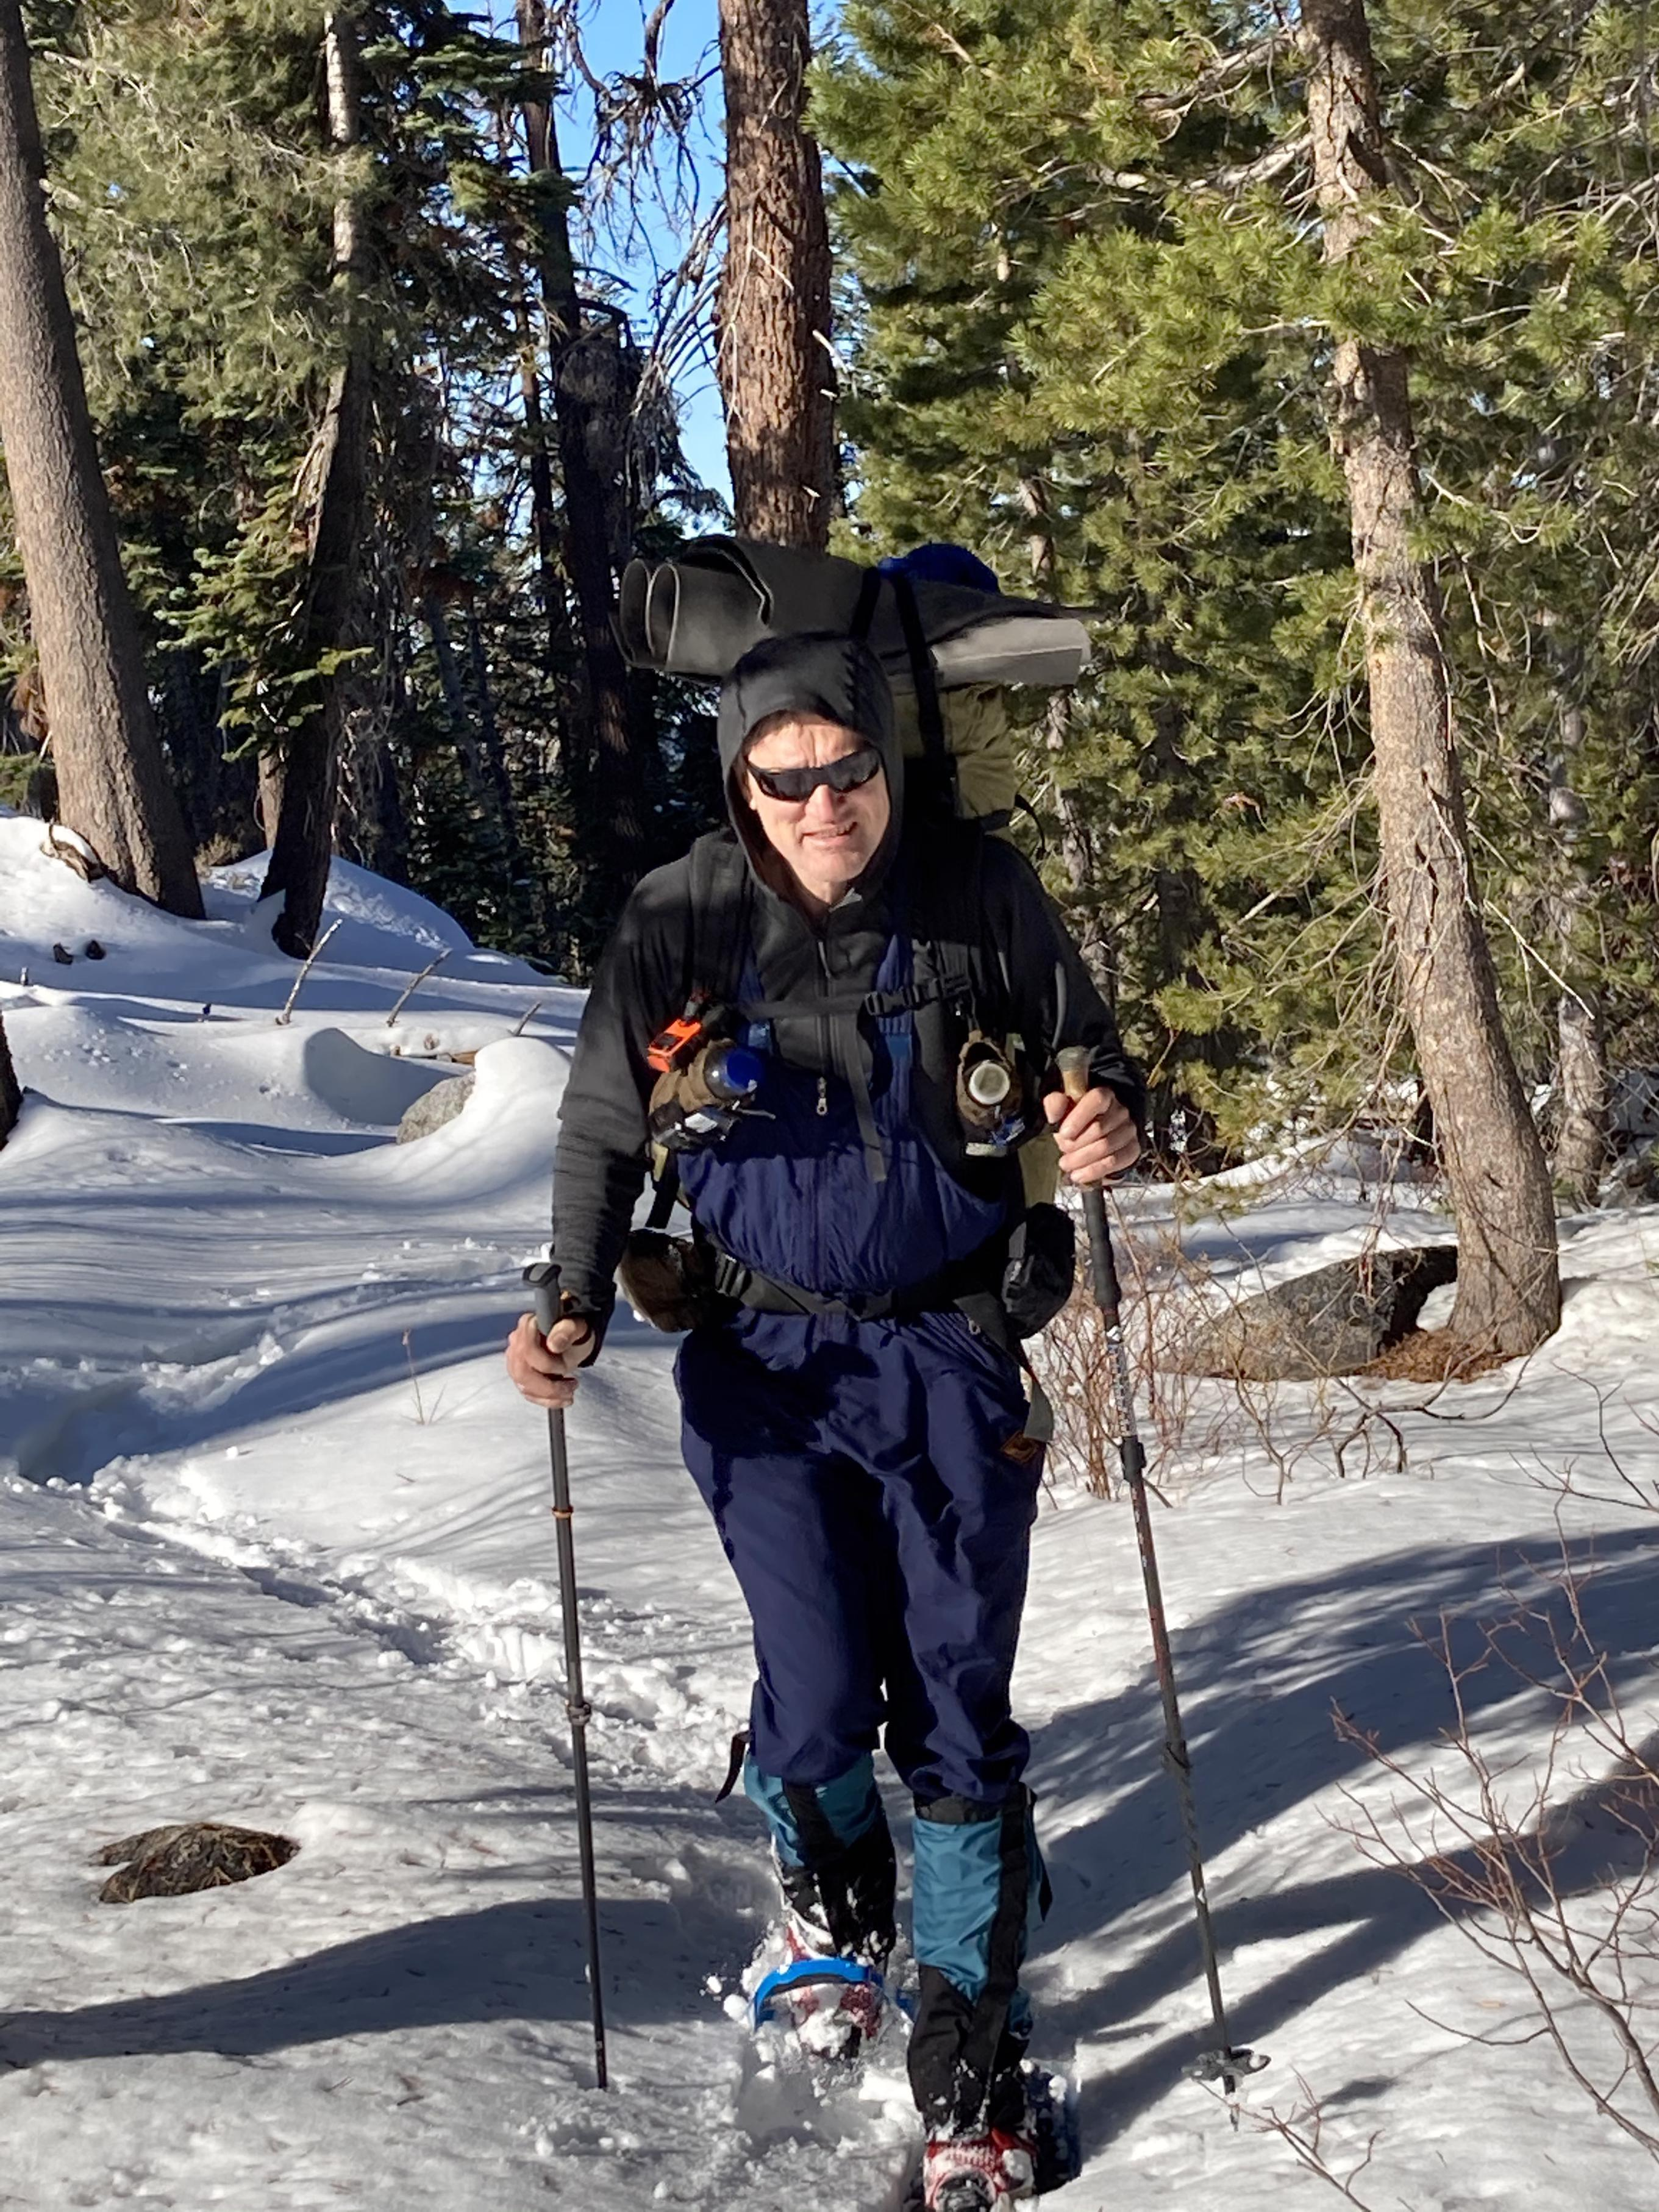 Manfred snowshoeing